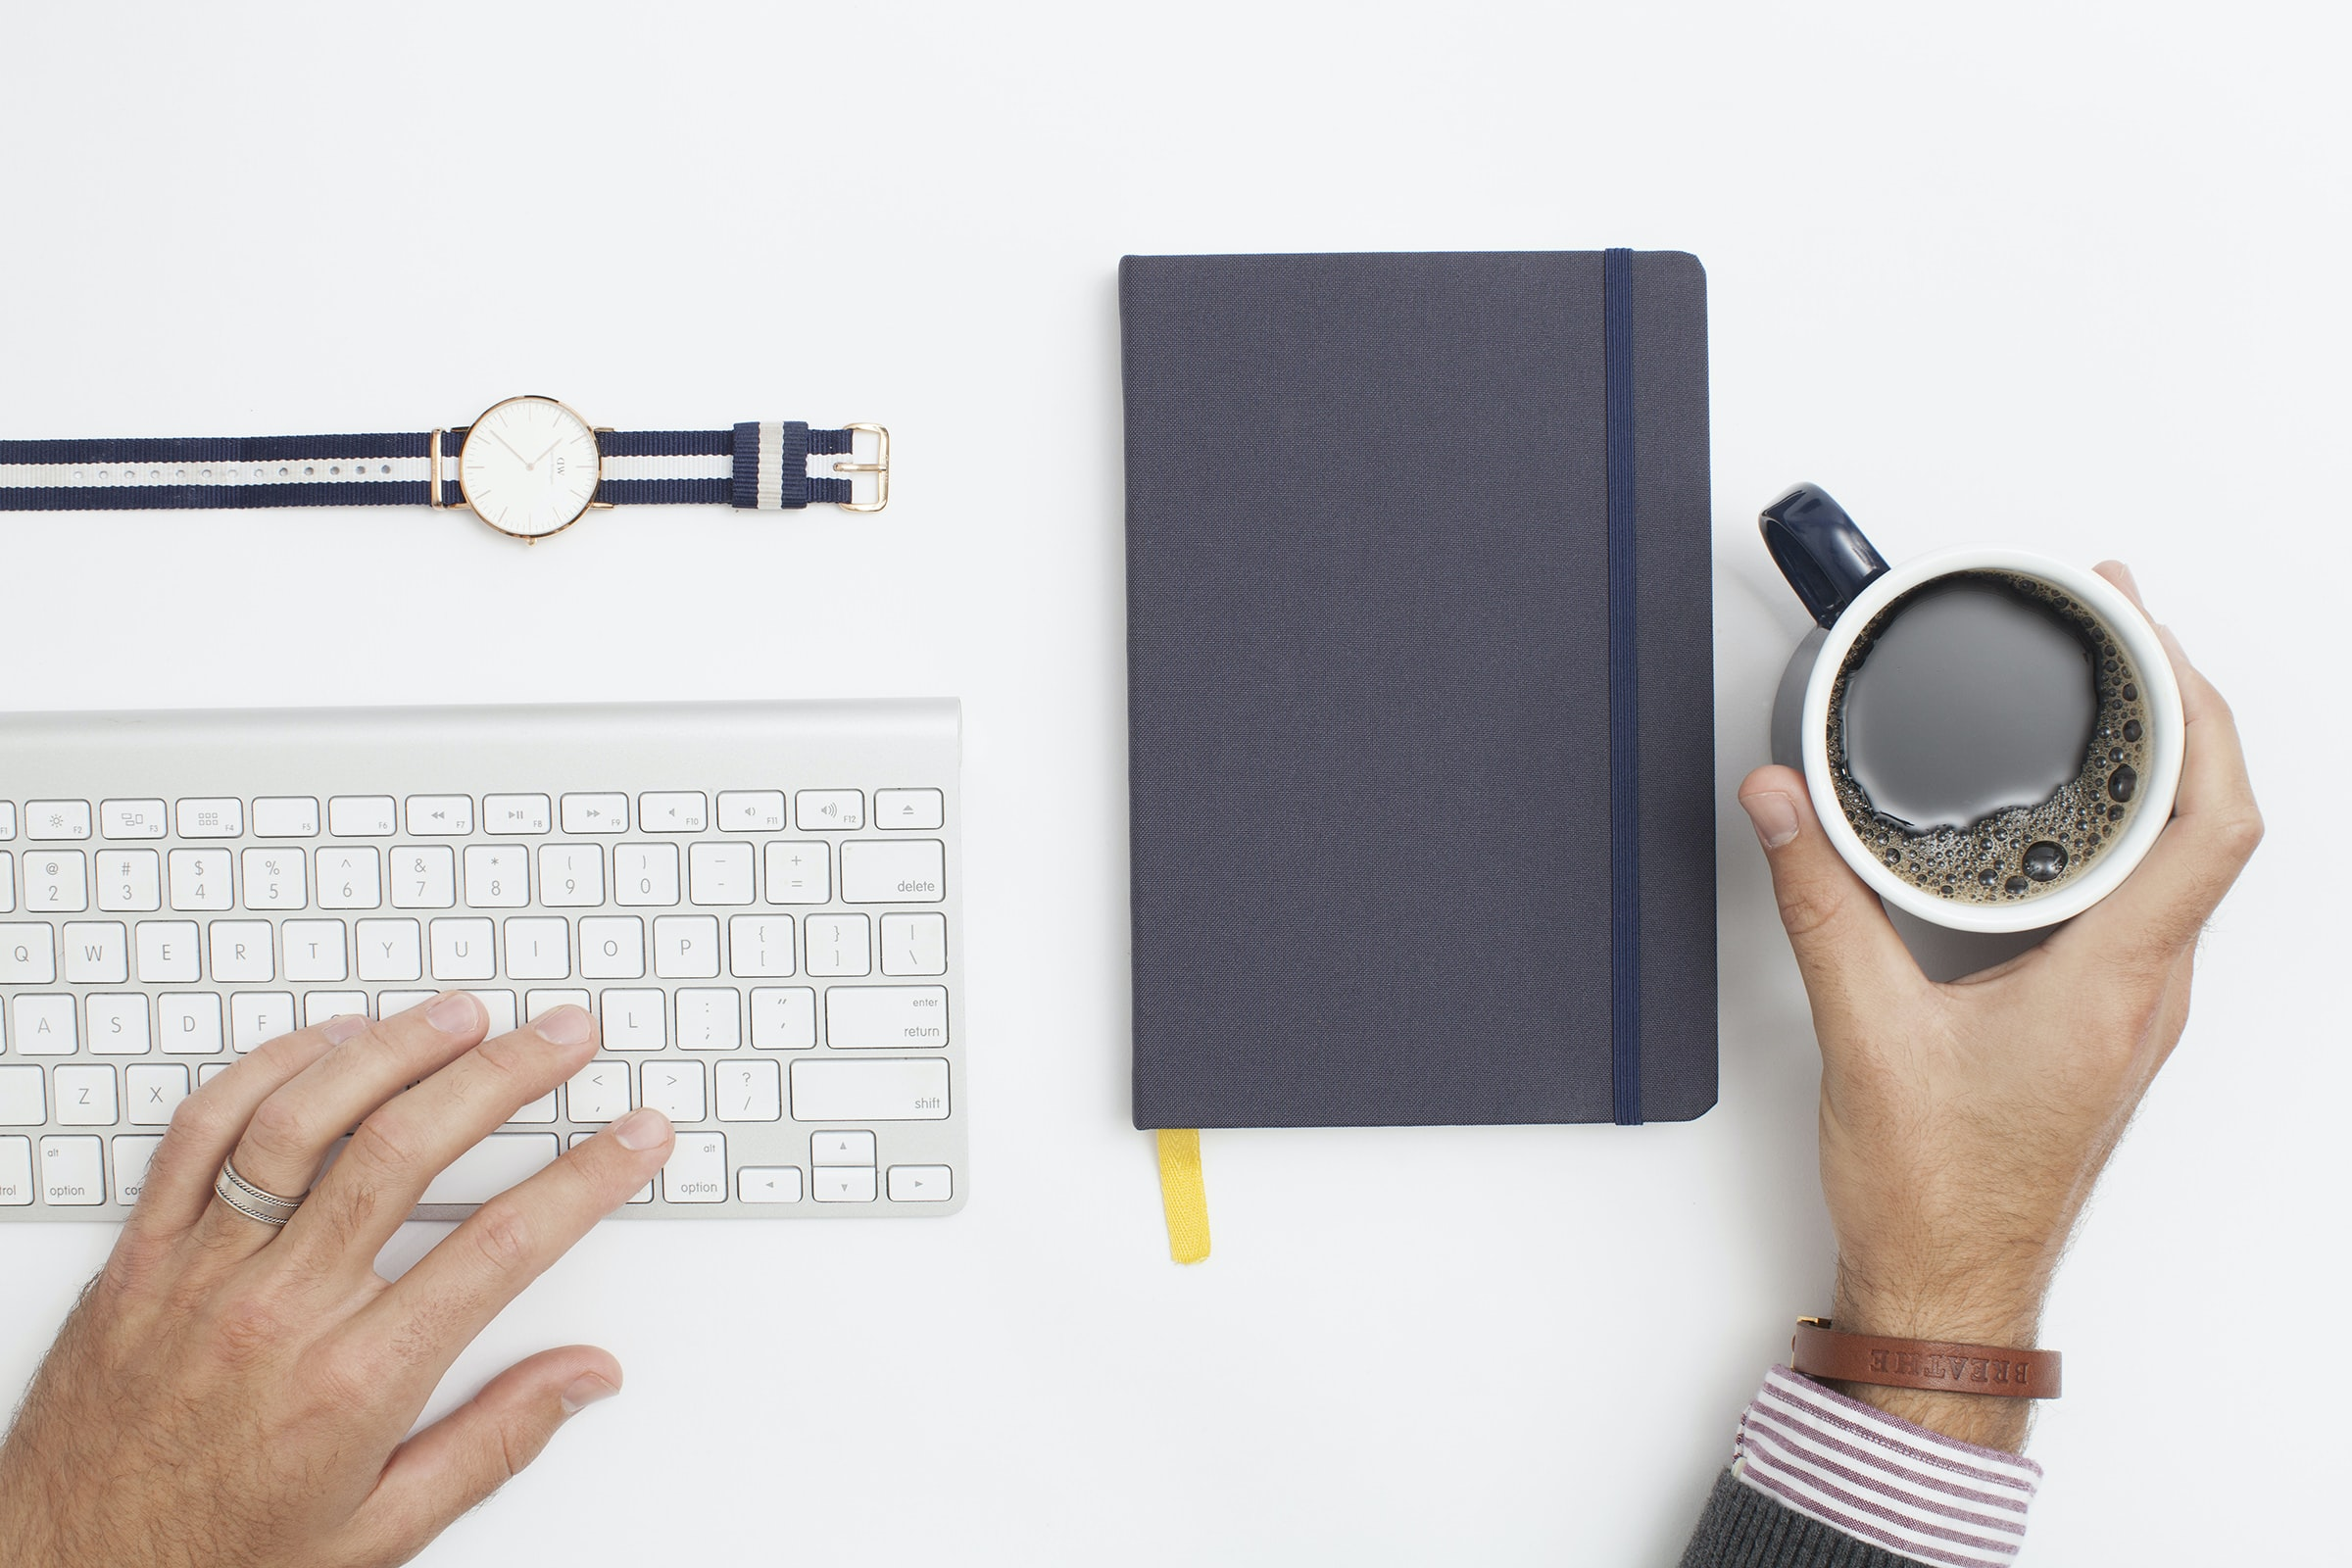 A man's hand holding a cup of coffee on a workspace with a notebook and a keyboard